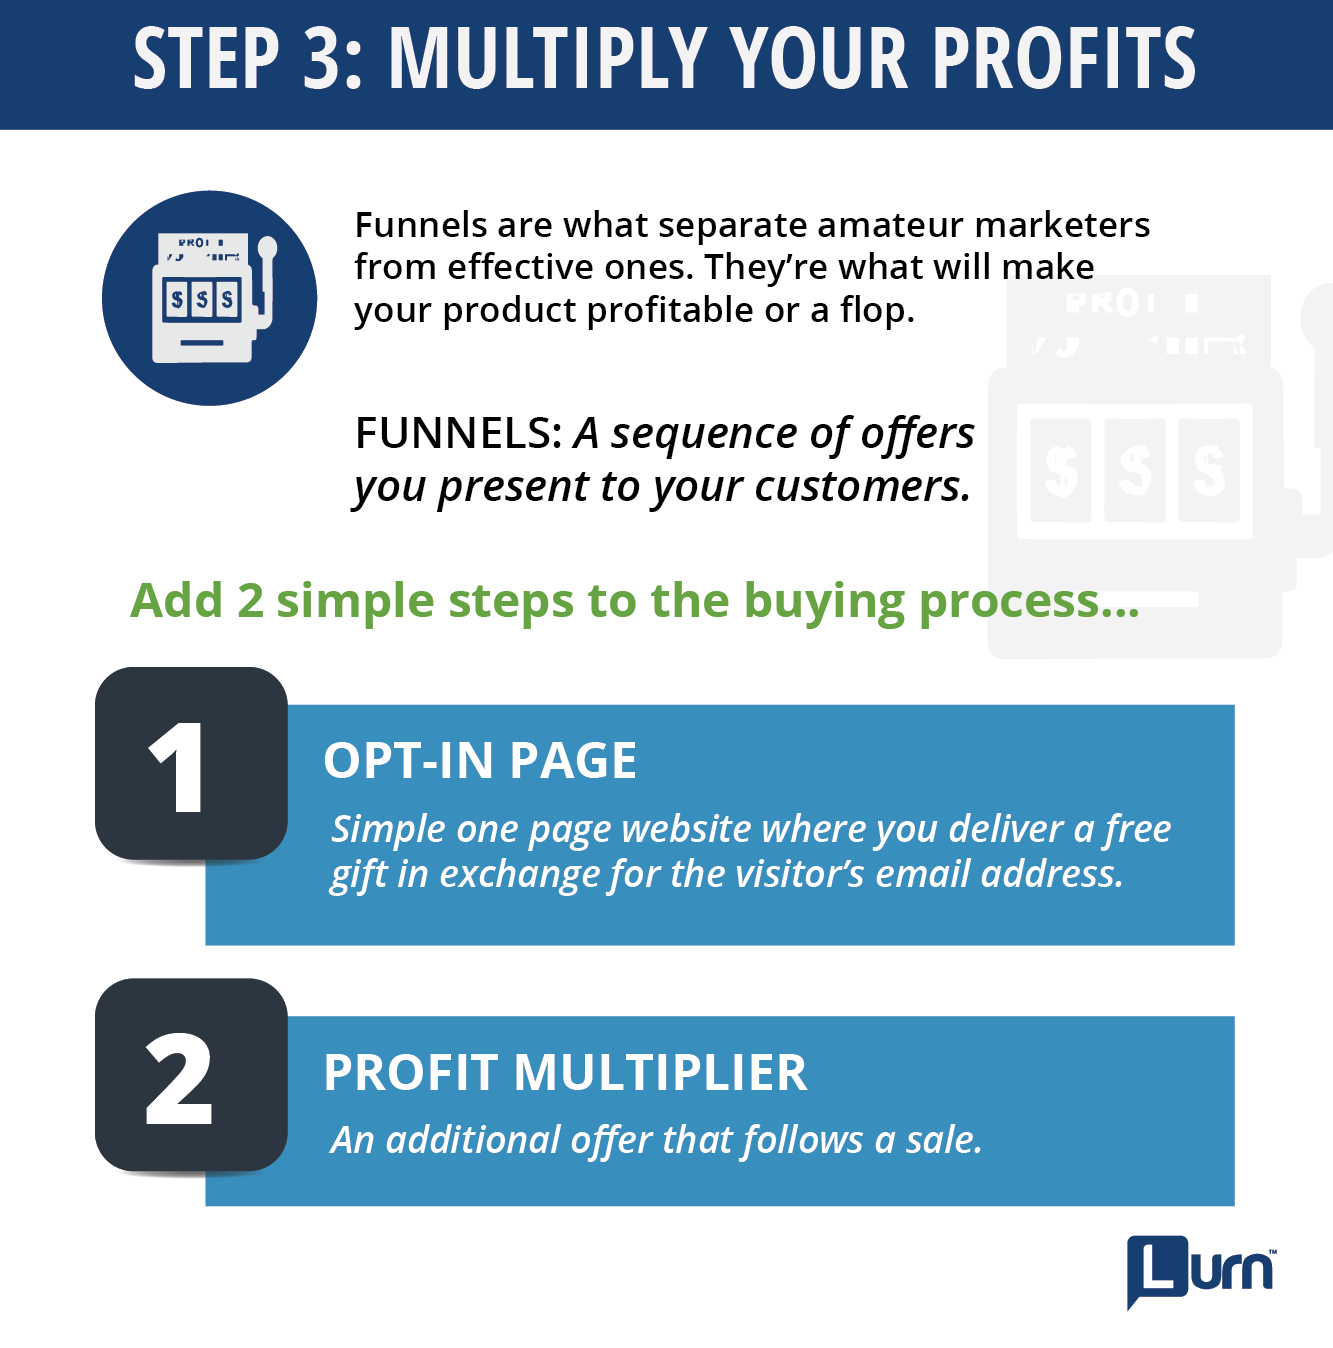 Step 3: Multiply Your Profits